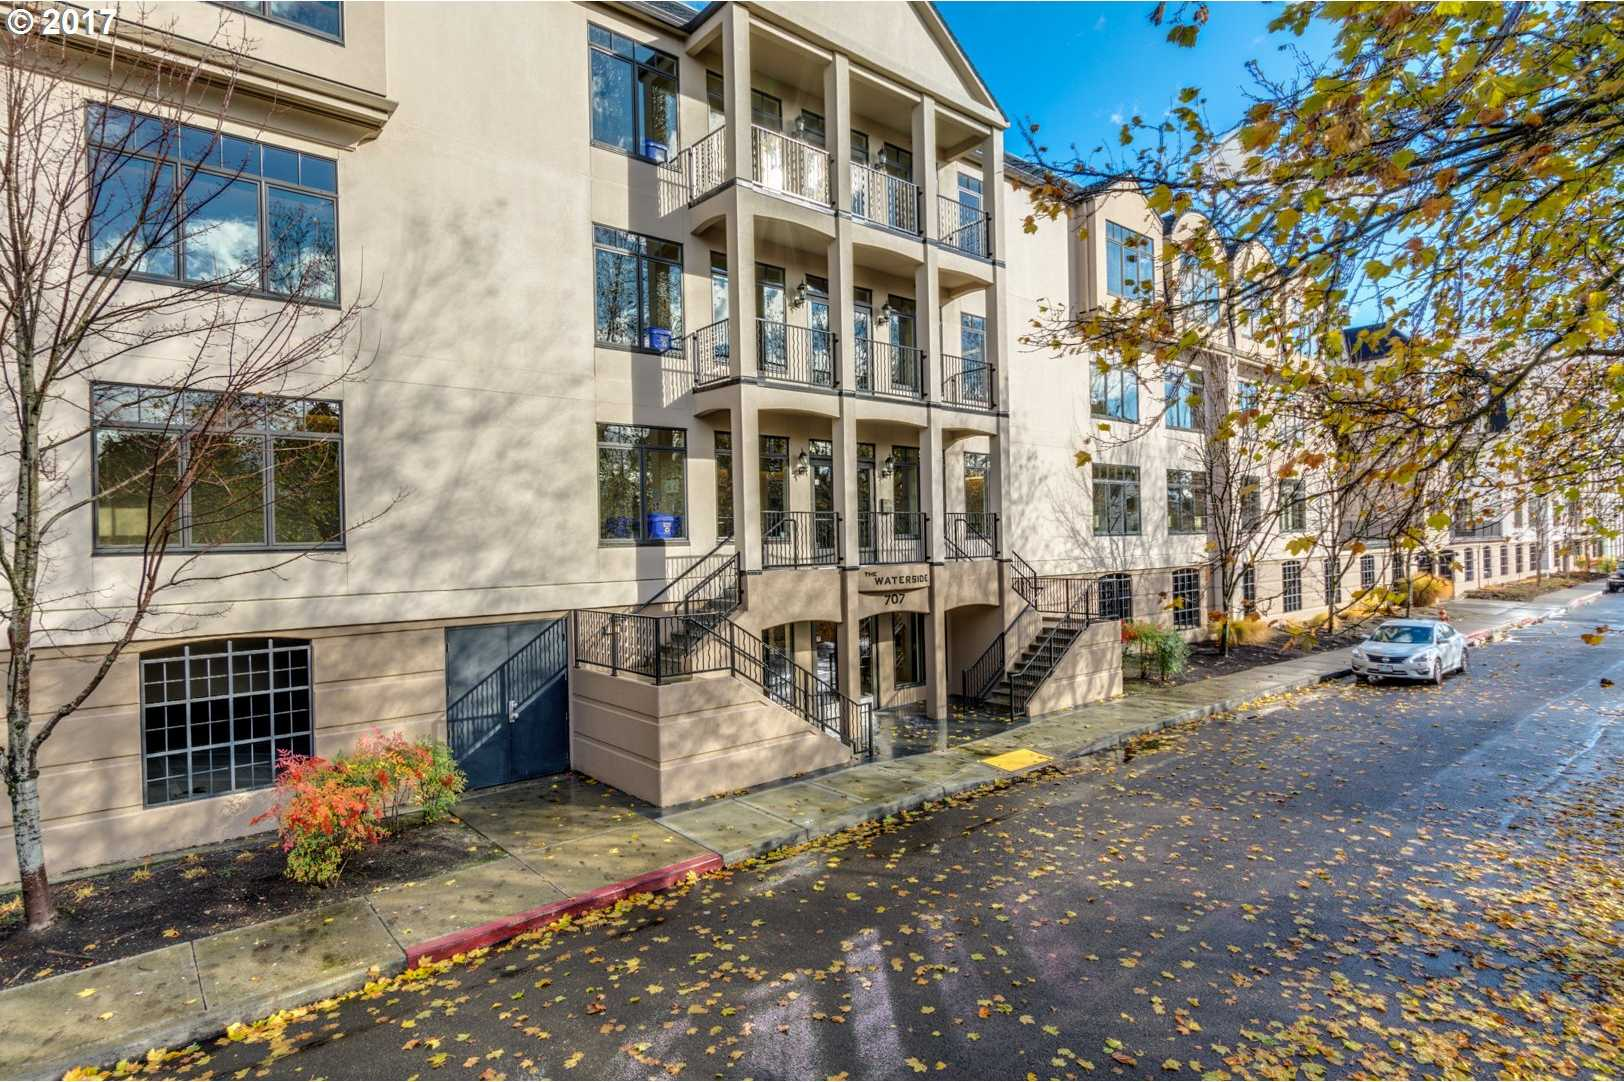 $405,000 - 2Br/2Ba -  for Sale in Waterside, Portland